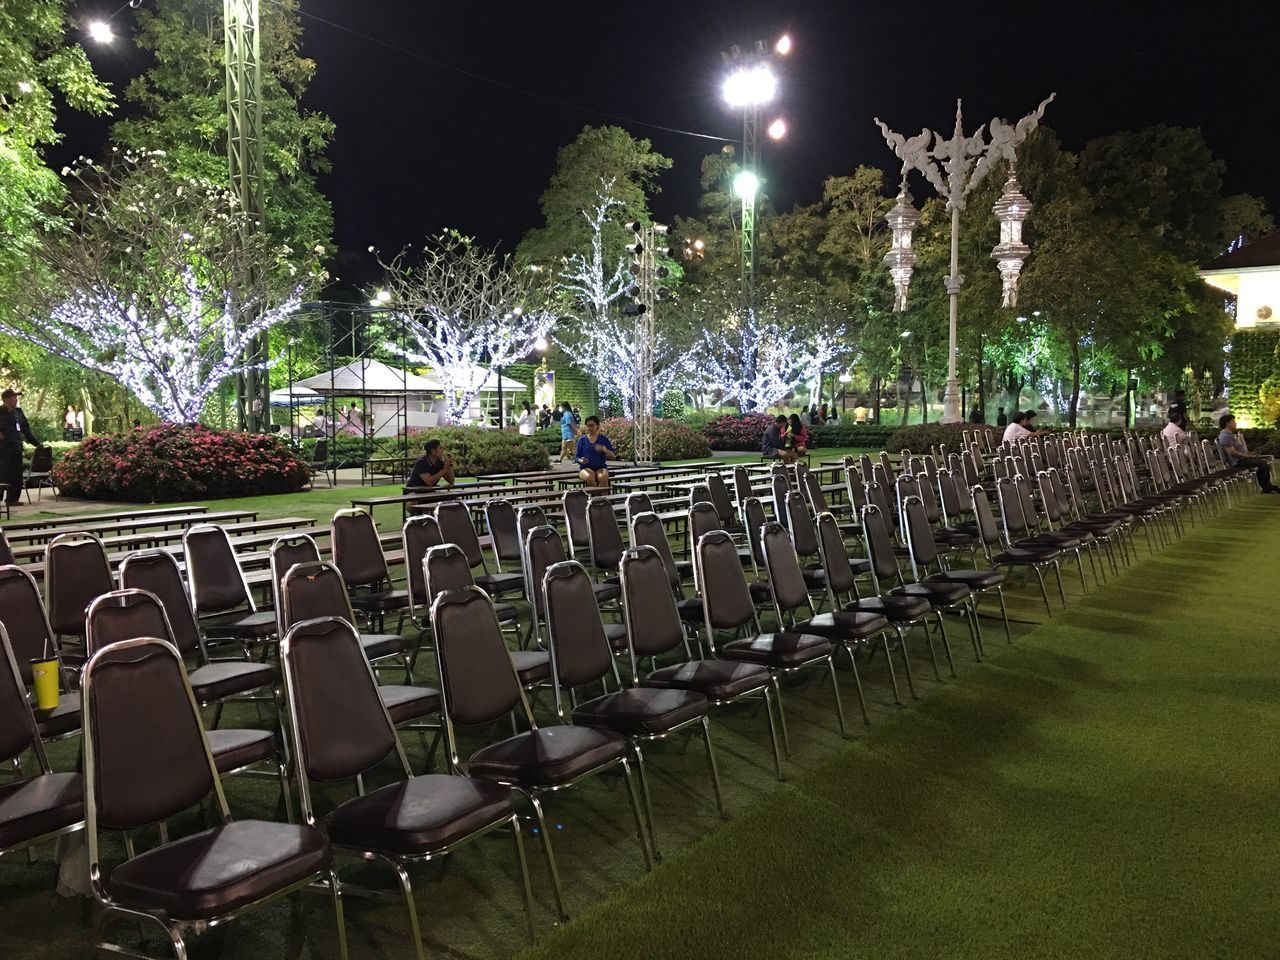 in a row, night, tree, grass, chair, outdoors, no people, illuminated, nature